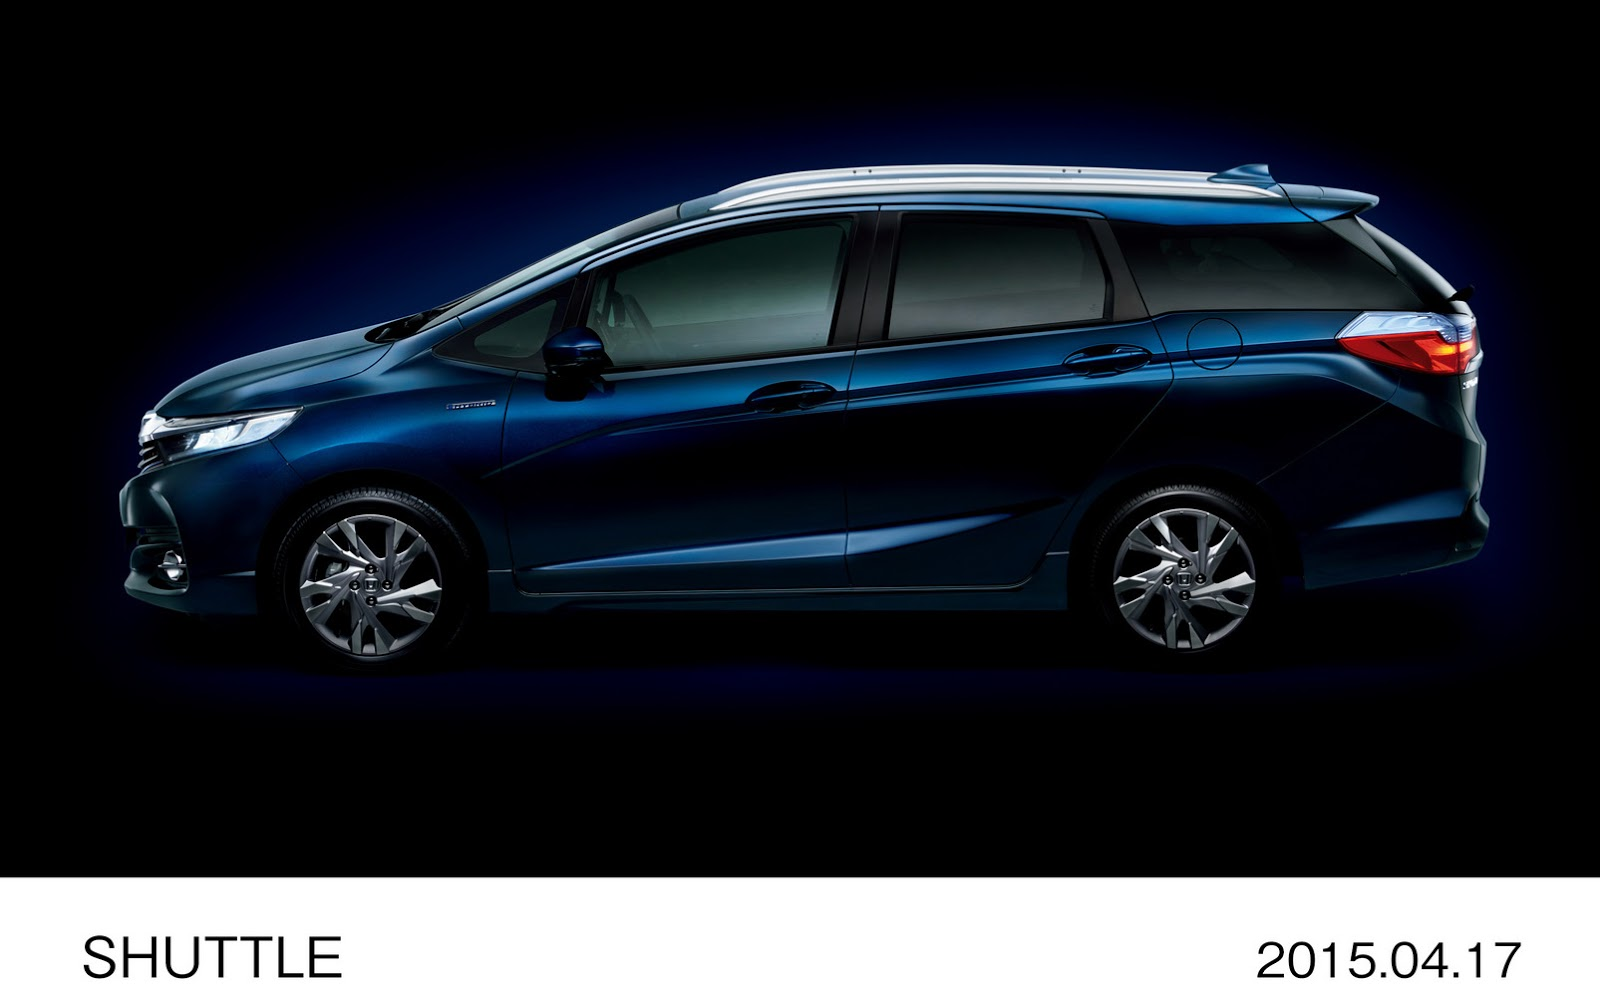 2015 Honda Shuttle Revealed in Japan The Fits Wagon